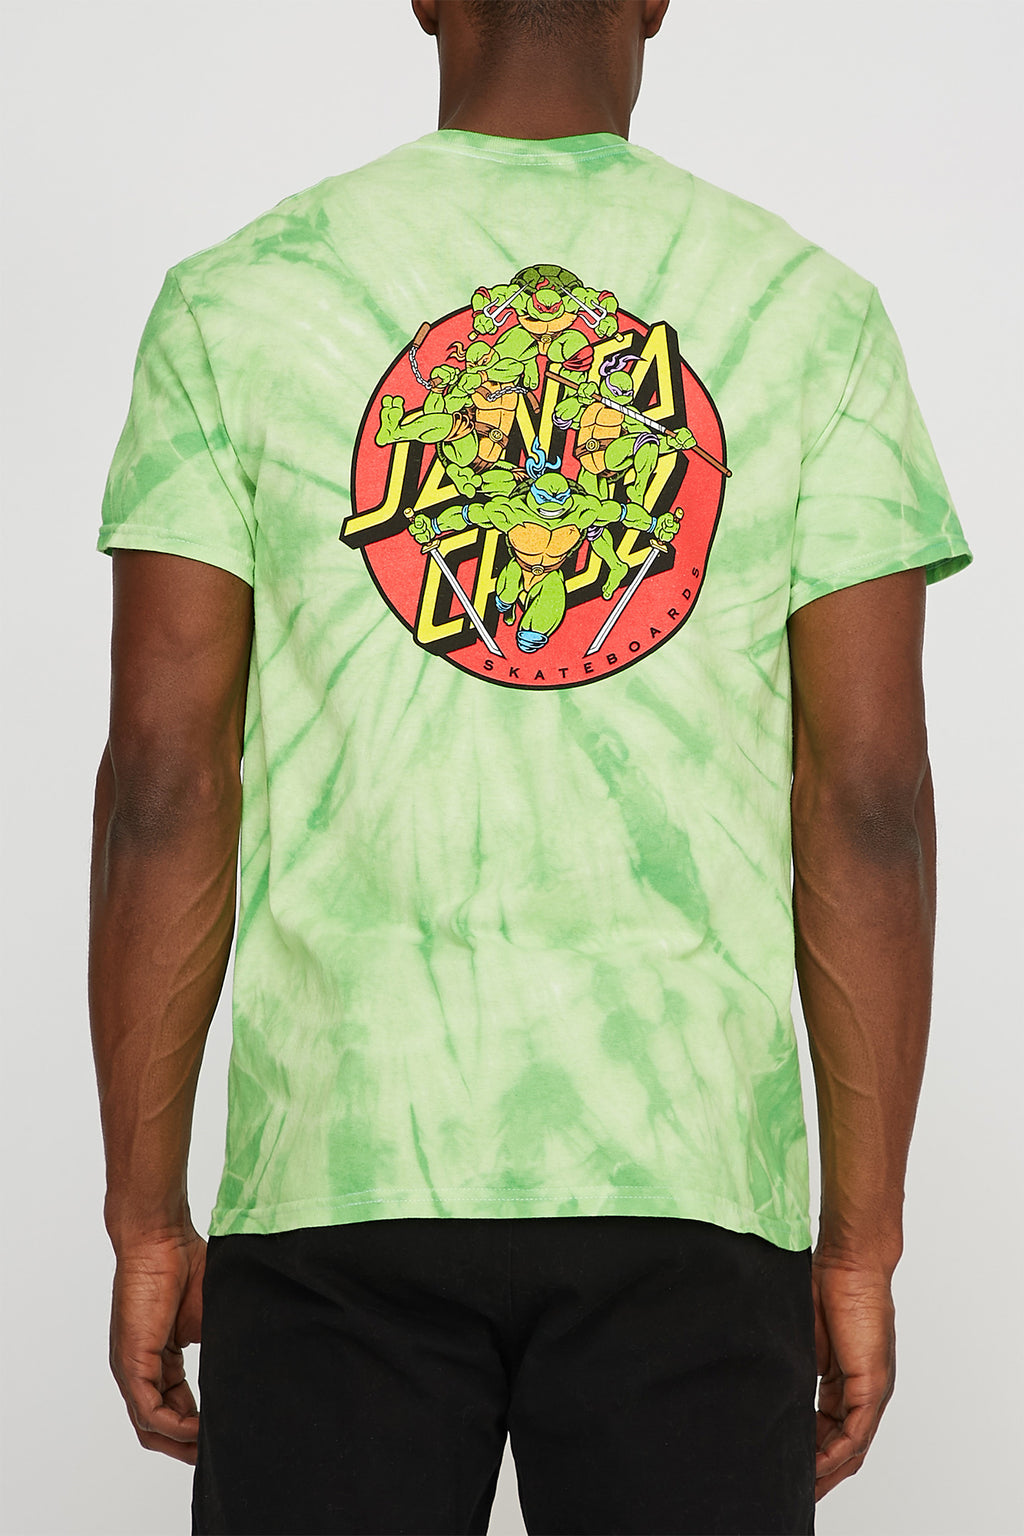 Ninja Turtles x Santa Cruz Tie Dye T-Shirt